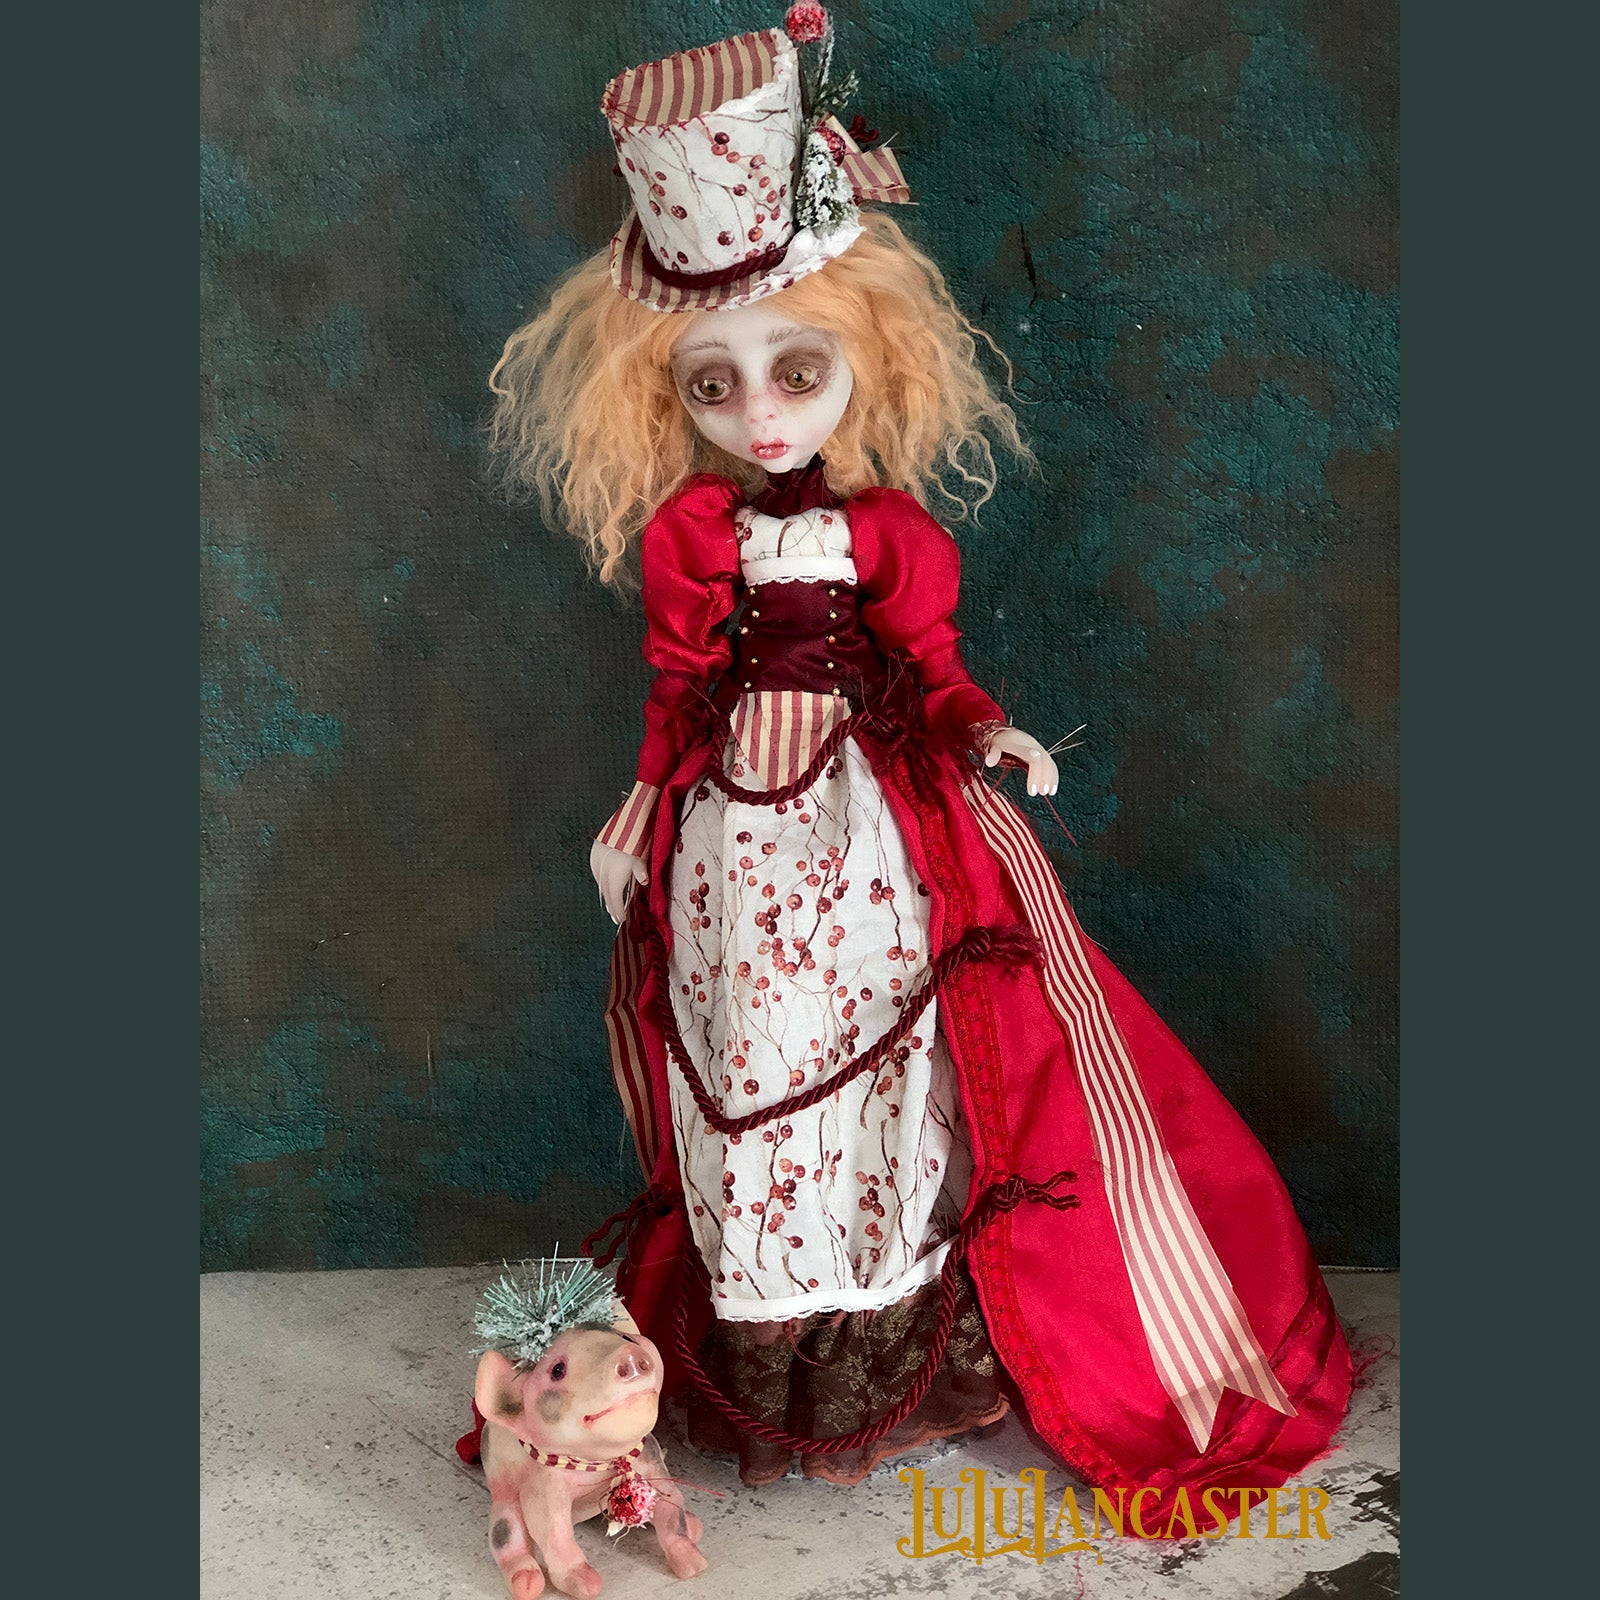 Robin and the Christmas Pig Victorian Winter OOAK Art Doll LuLu Lancaster